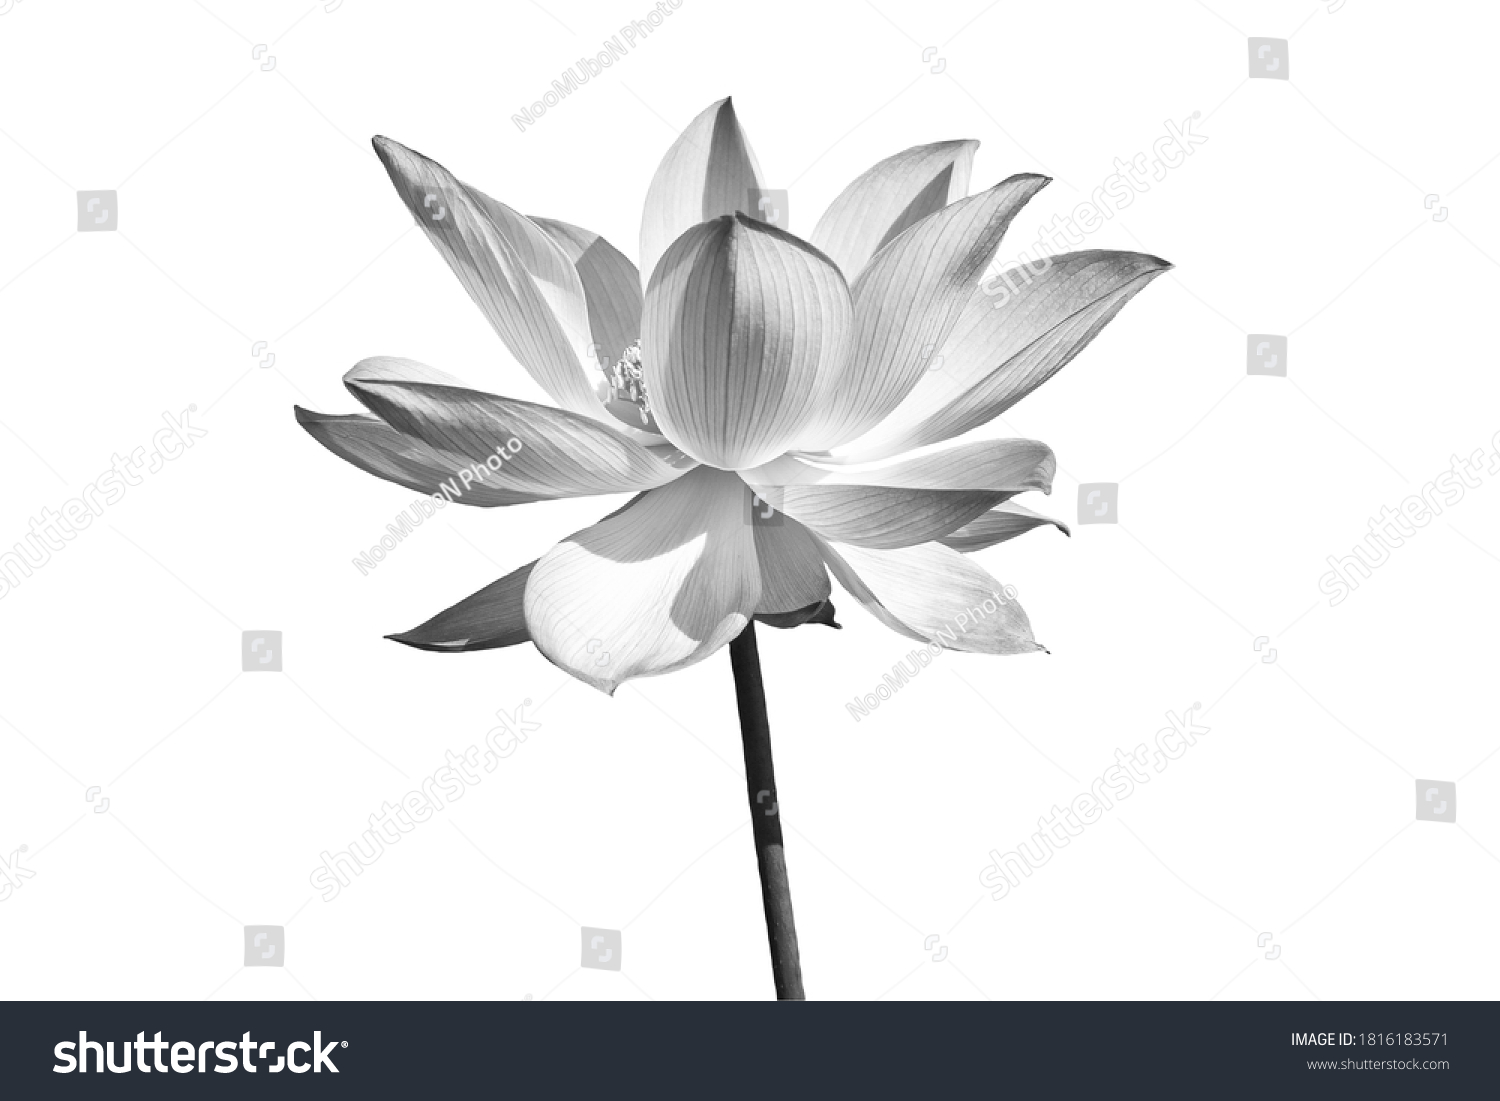 Black white Lotus flower isolated on white background. File with clipping path. #1816183571